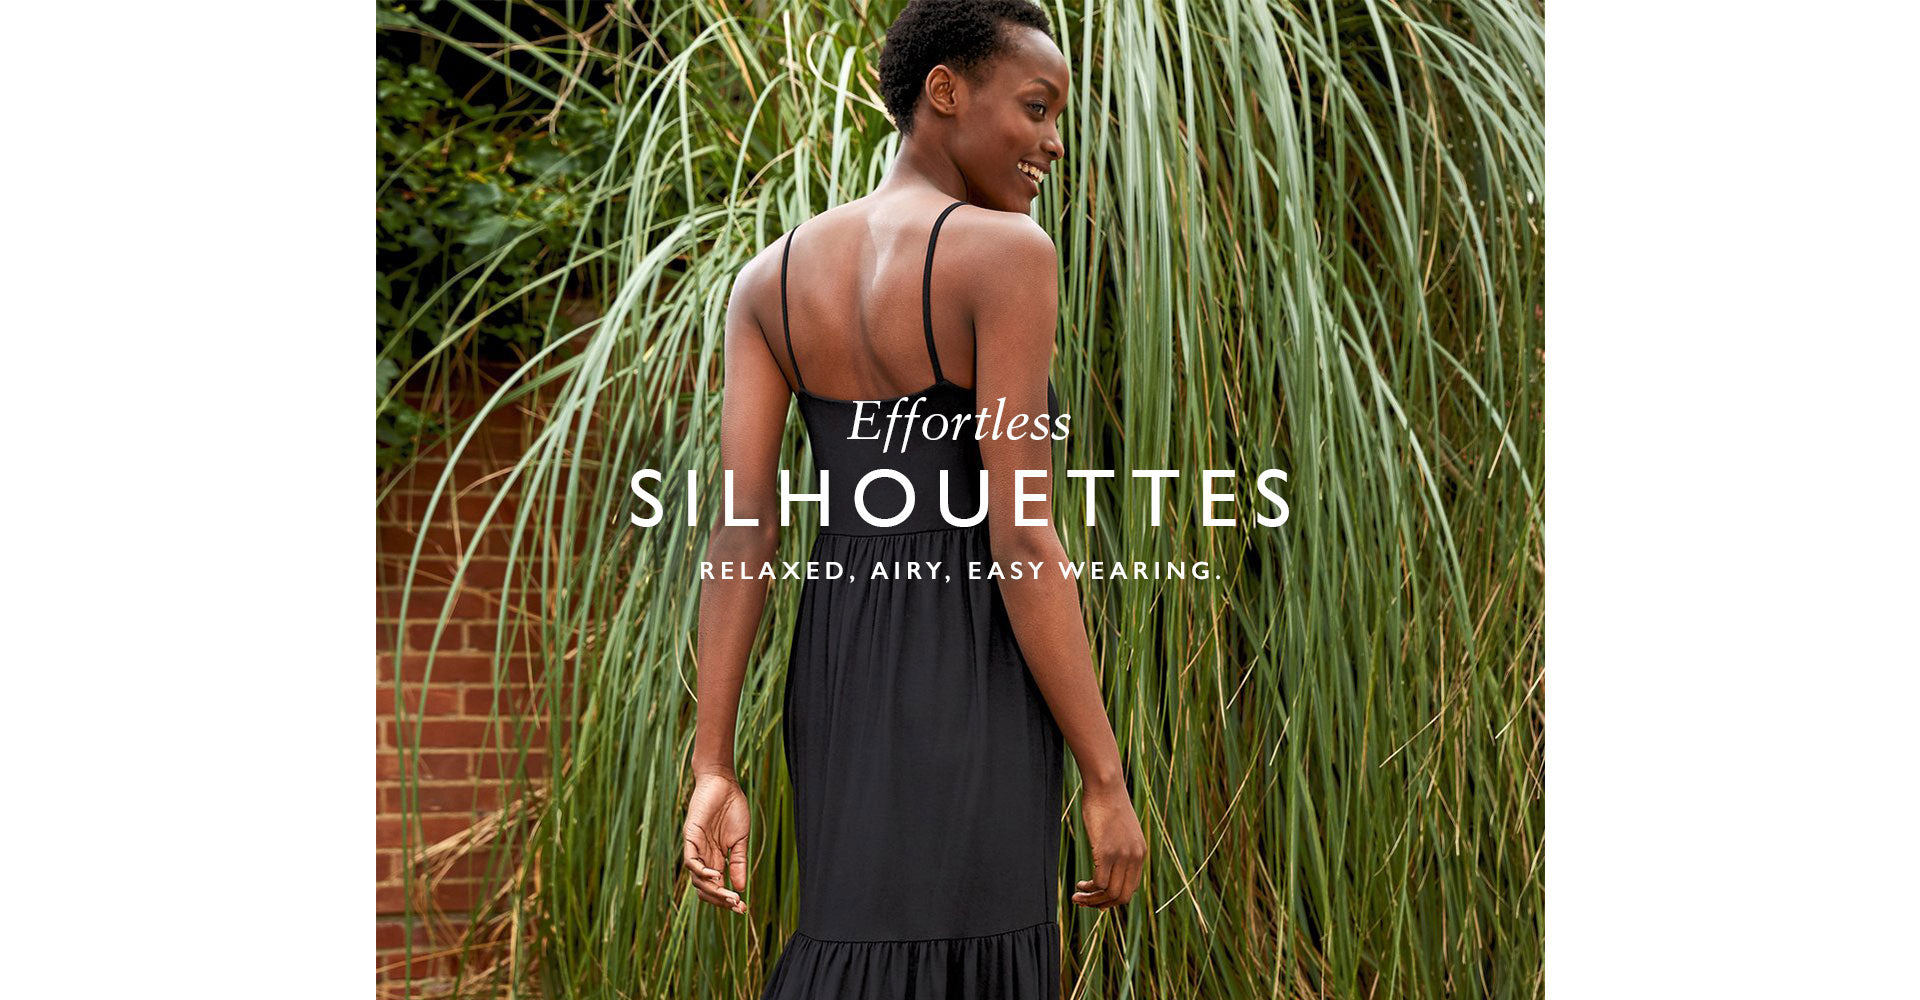 Effortless silhouettes